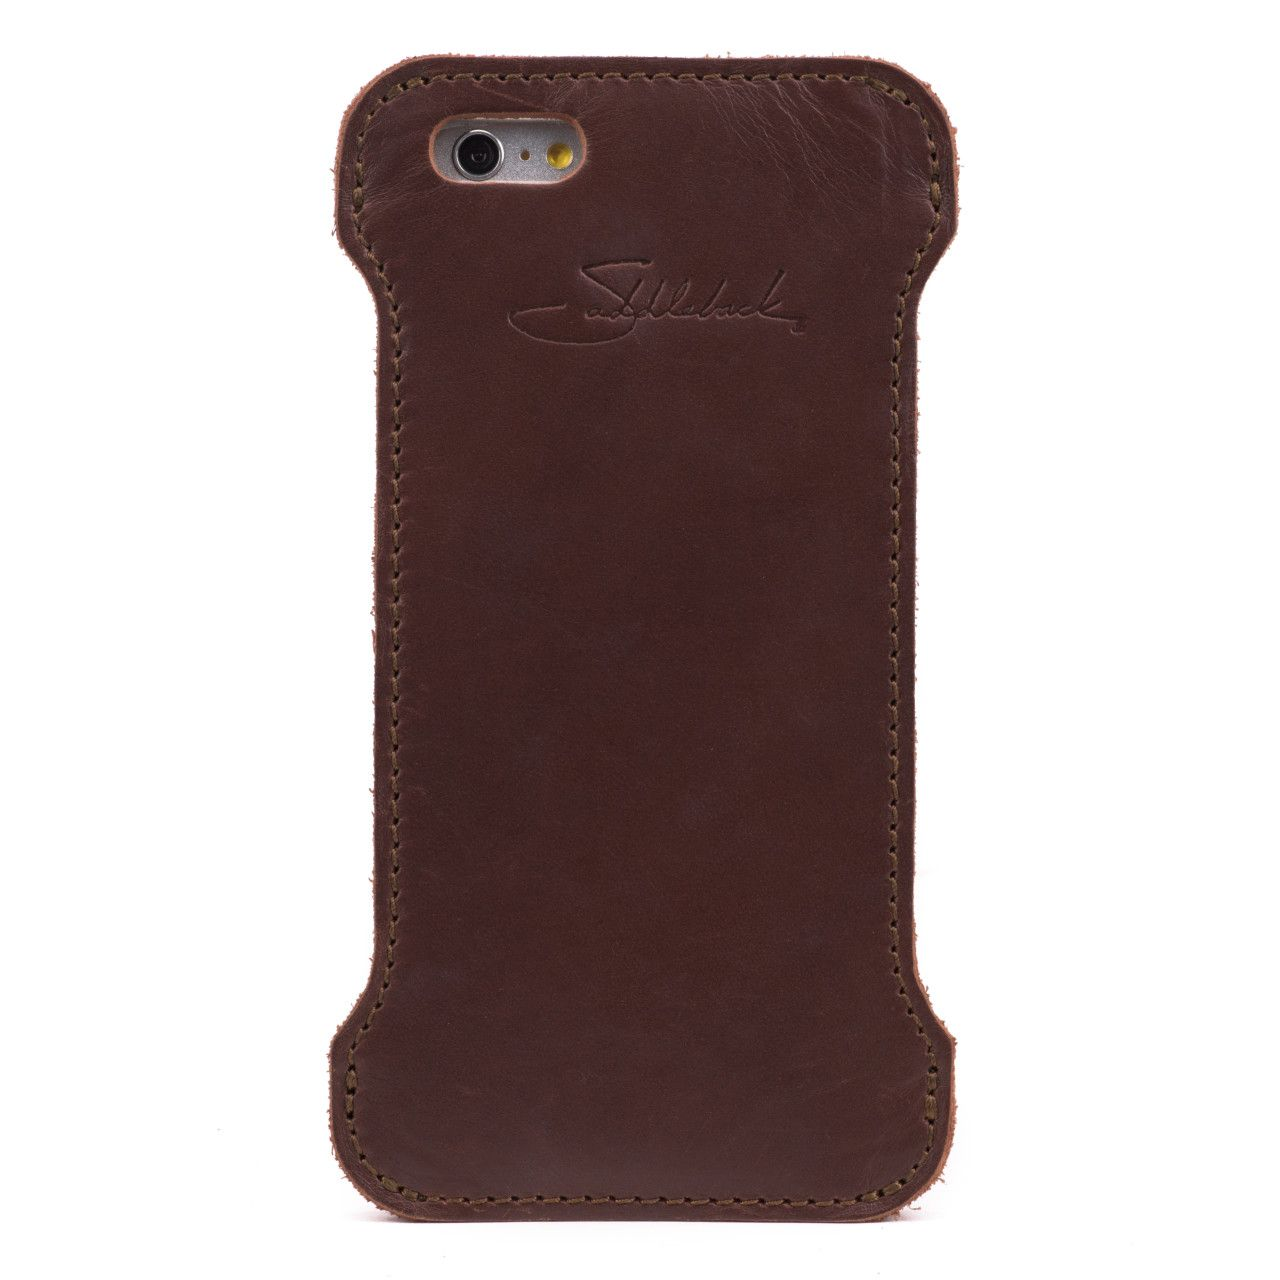 iphone 6 leather case large in chestnut leather